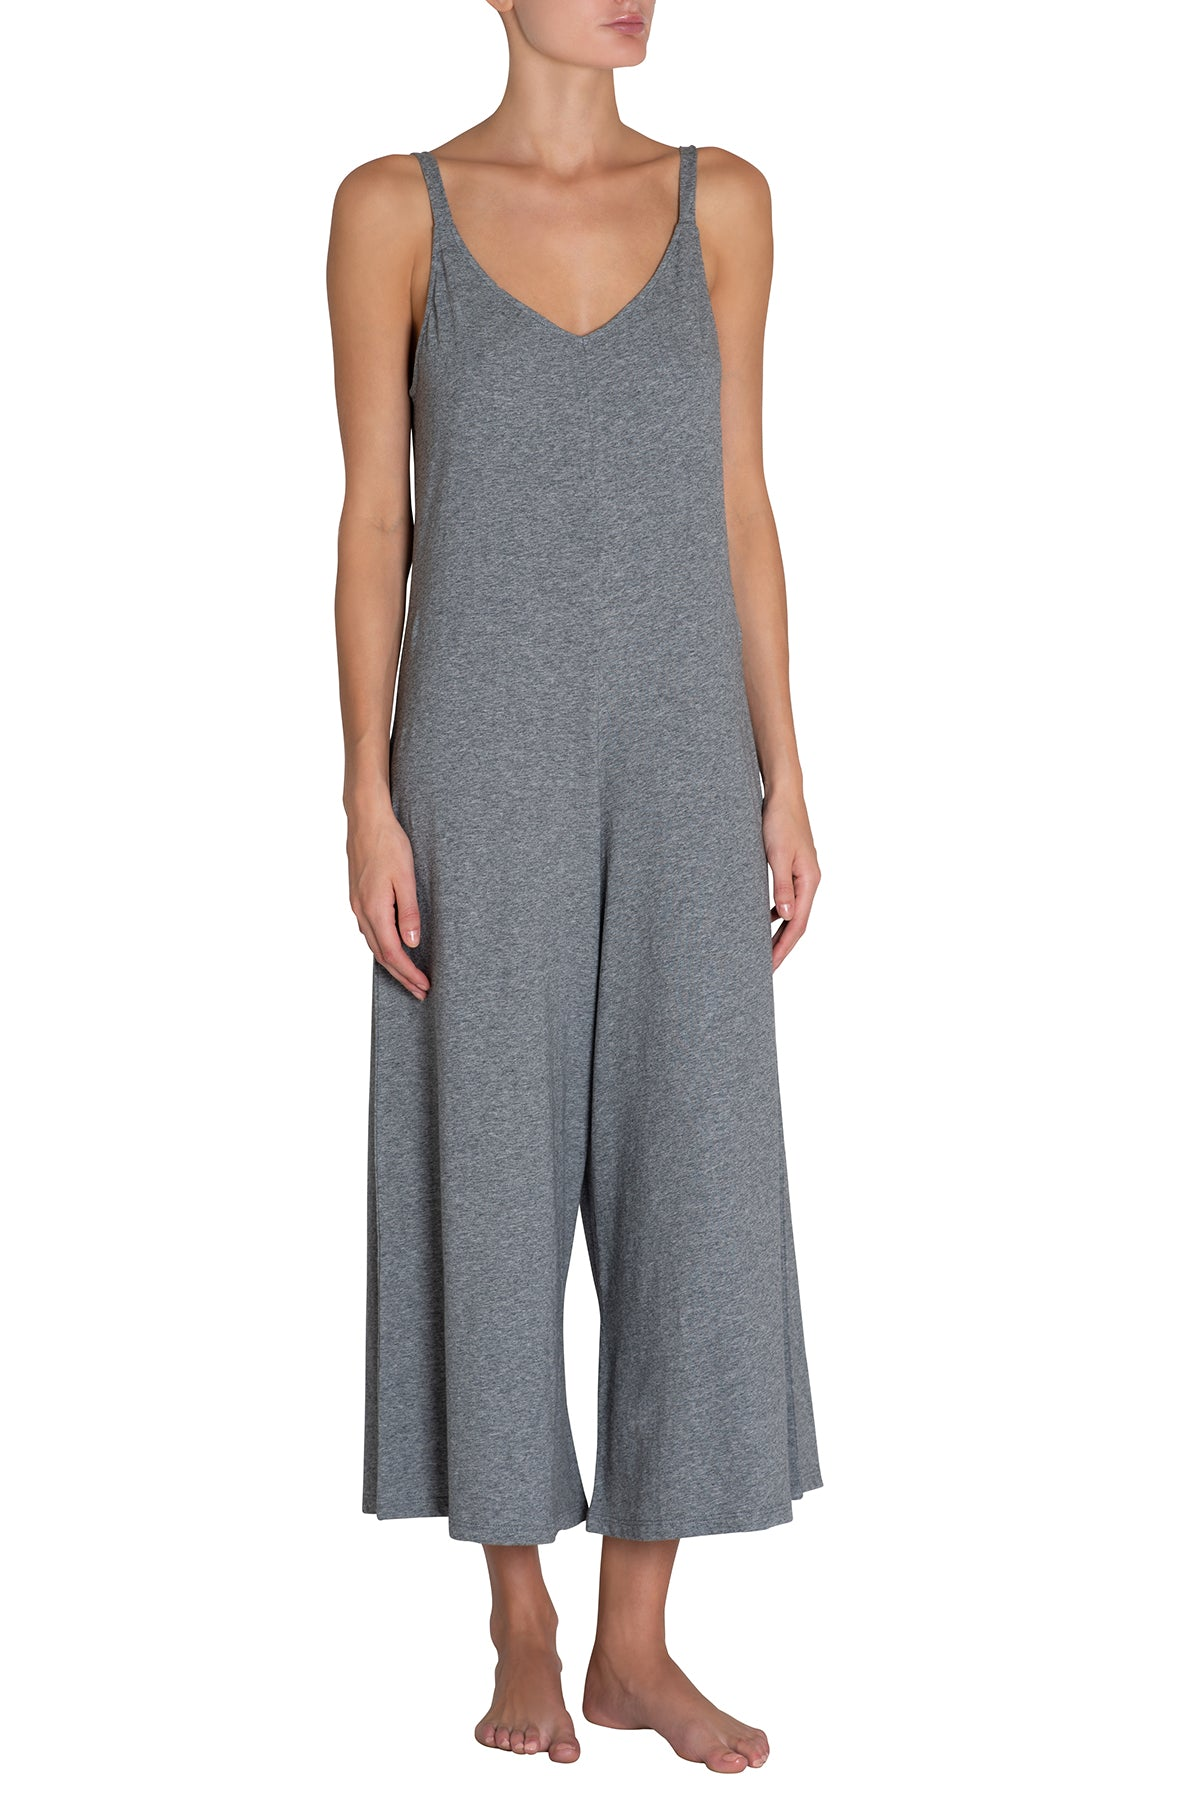 Eberjey Charlie Casual Jumpsuit - Heather Grey